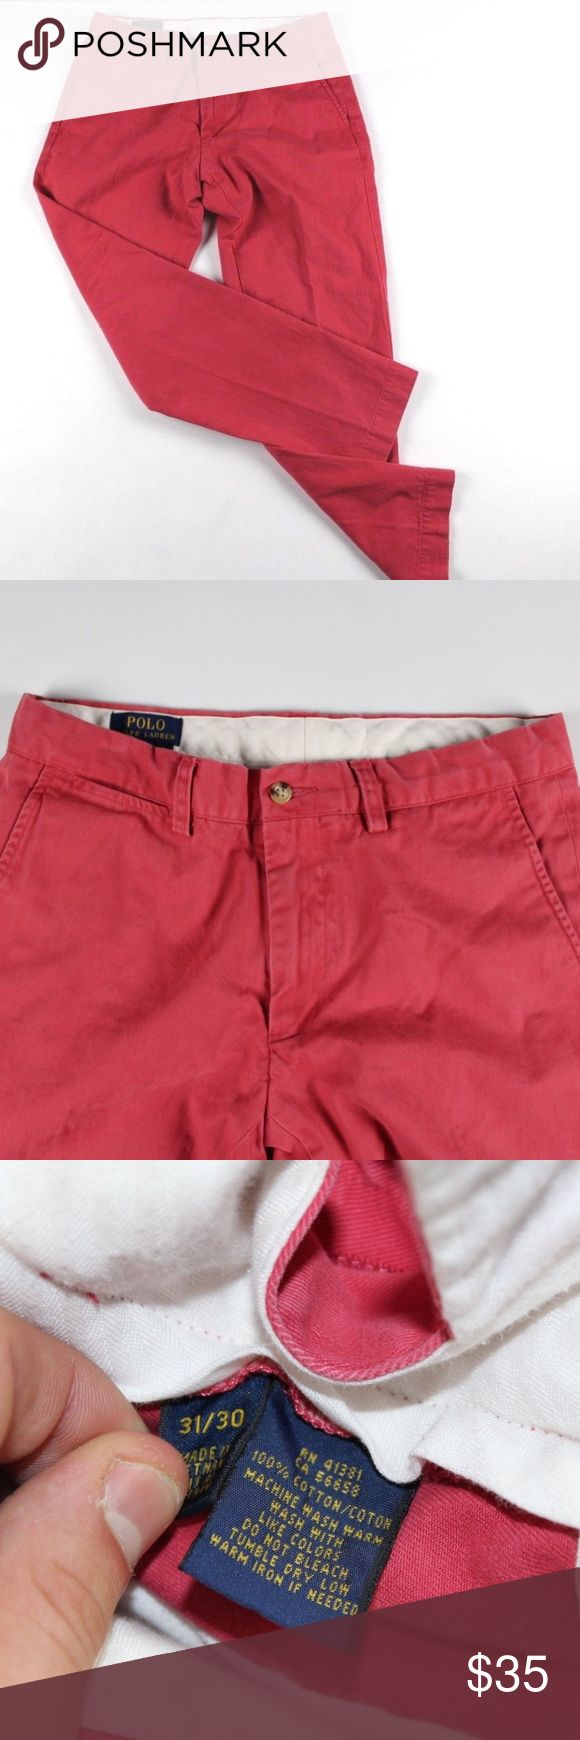 Polo by Ralph Lauren Slim Fit Chino Dress Pants Polo by Ralph Lauren Slim Fit Chinos  Excellent pants for a day out  Comes from a smoke-free household  The size is 31x30  Reddish Pink  Cotton  Check out my other items for sale!  J93 Polo by Ralph Lauren Pants Chinos & Khakis